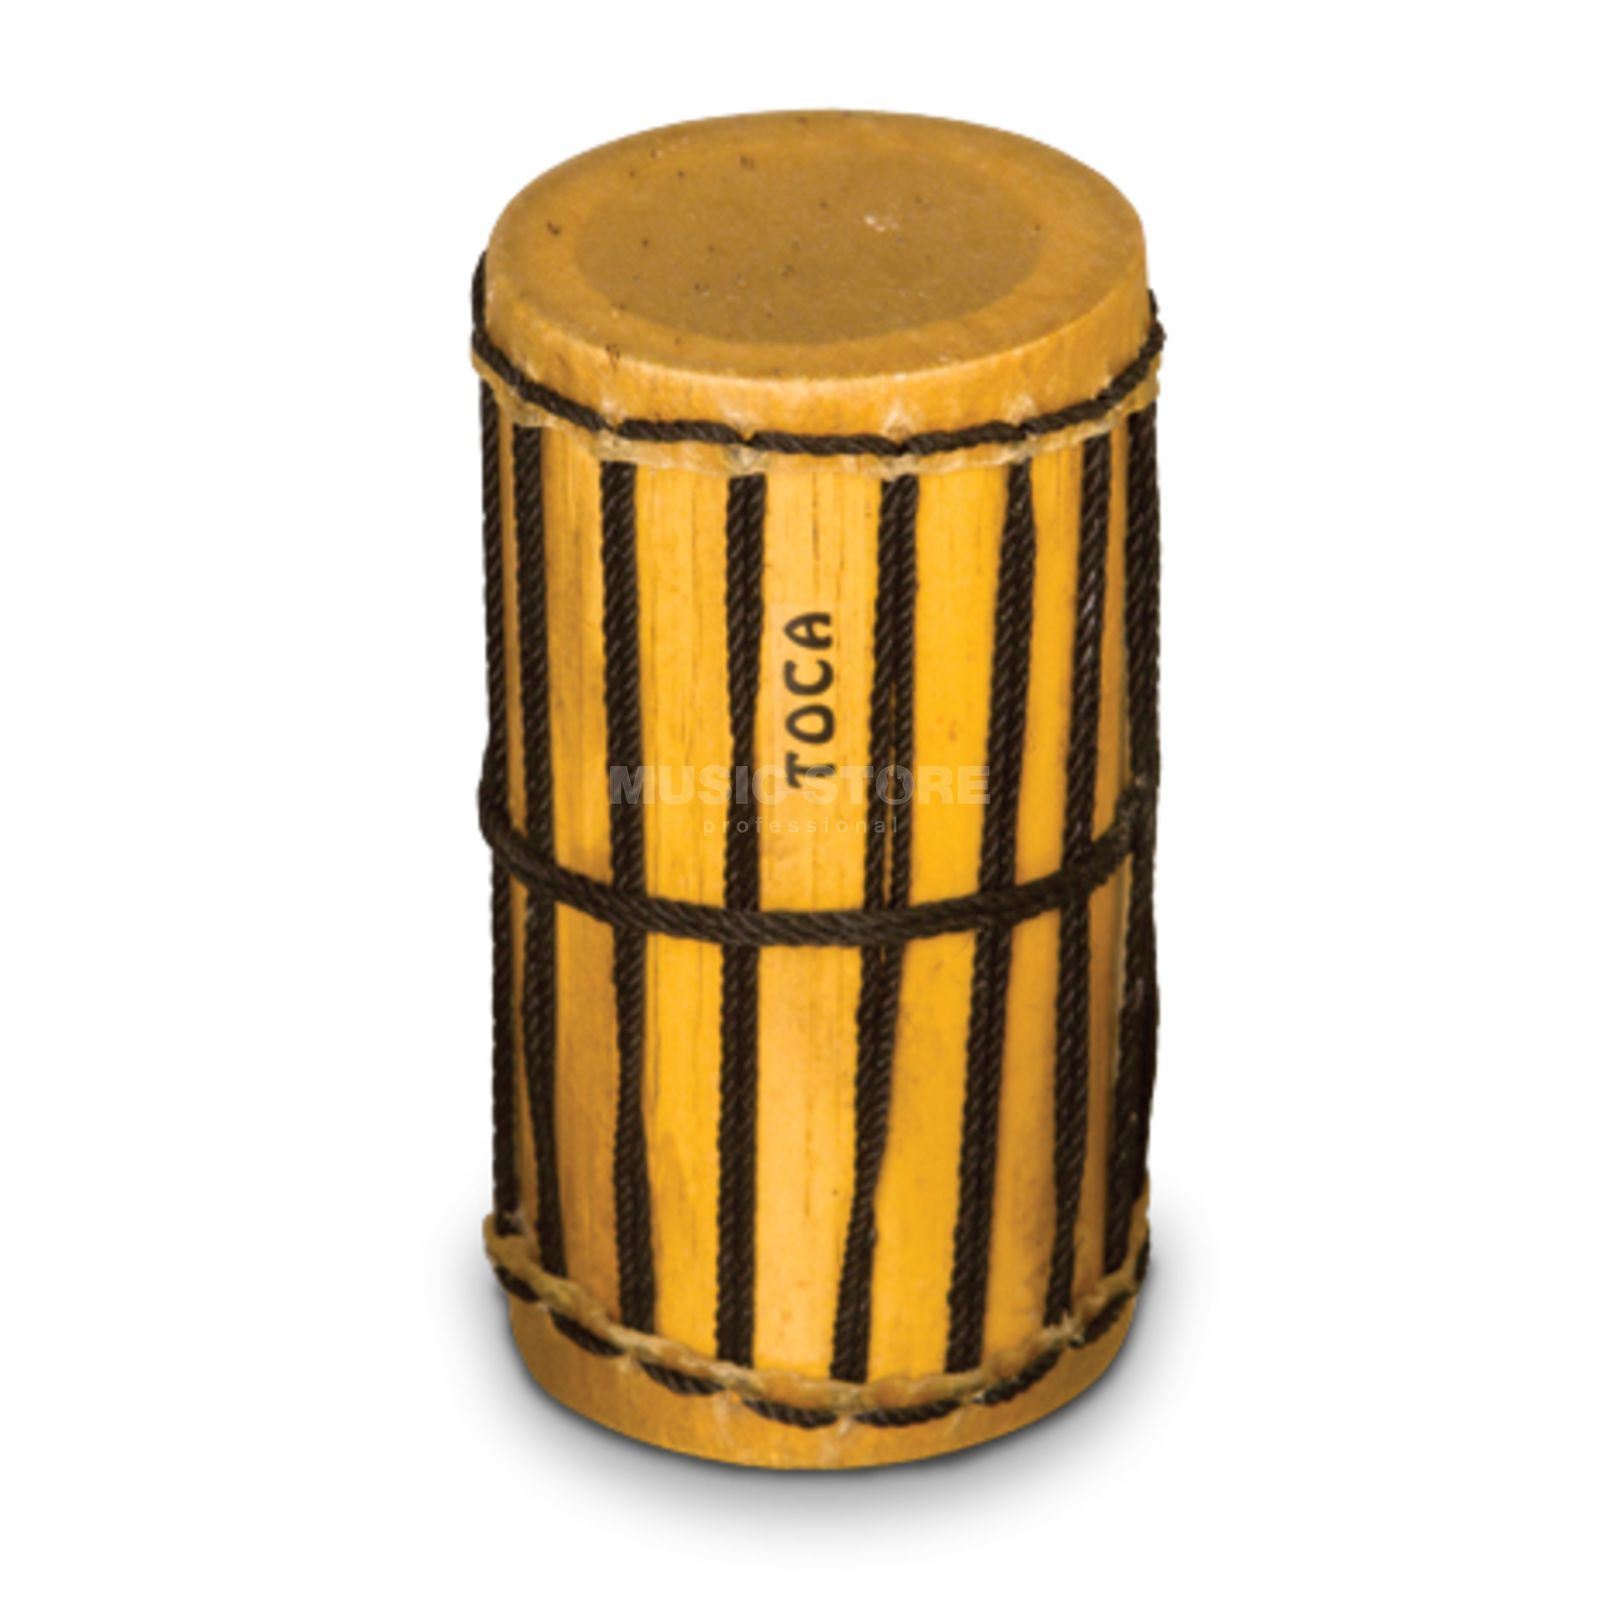 Toca Percussion Bamboo Shaker T-BSL, Large Produktbild